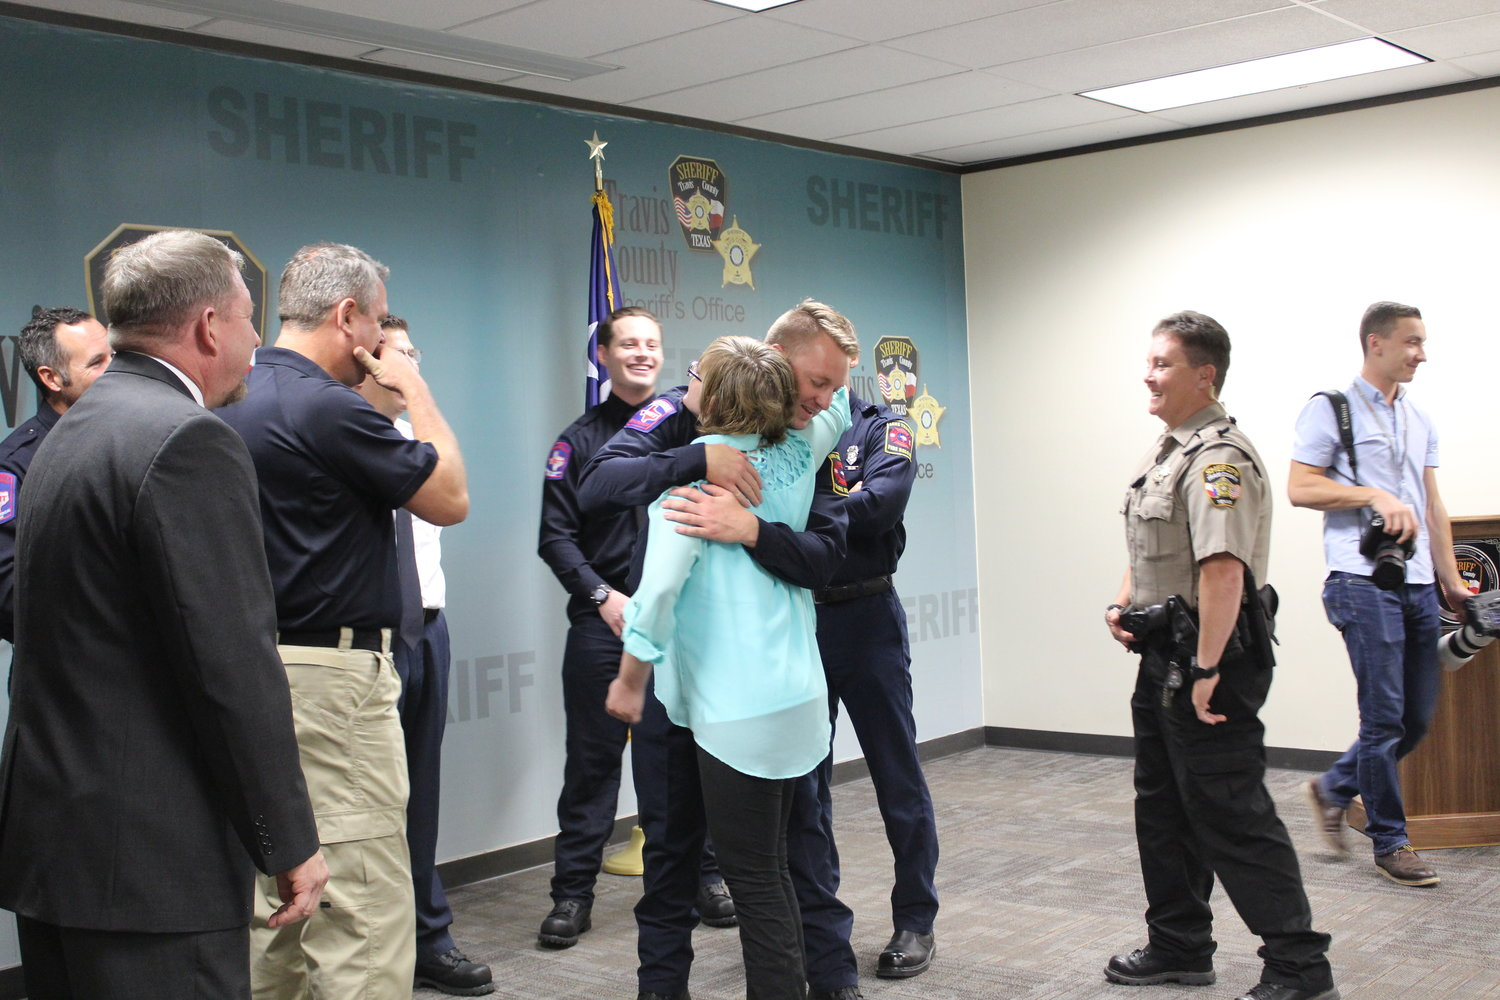 Jaclyn Burden shares a hug with one of the first responders who saved her life on March 15, 2017, after she was shot in the head and arm in a double-homicide that took the life of her boyfriend and her landlord.